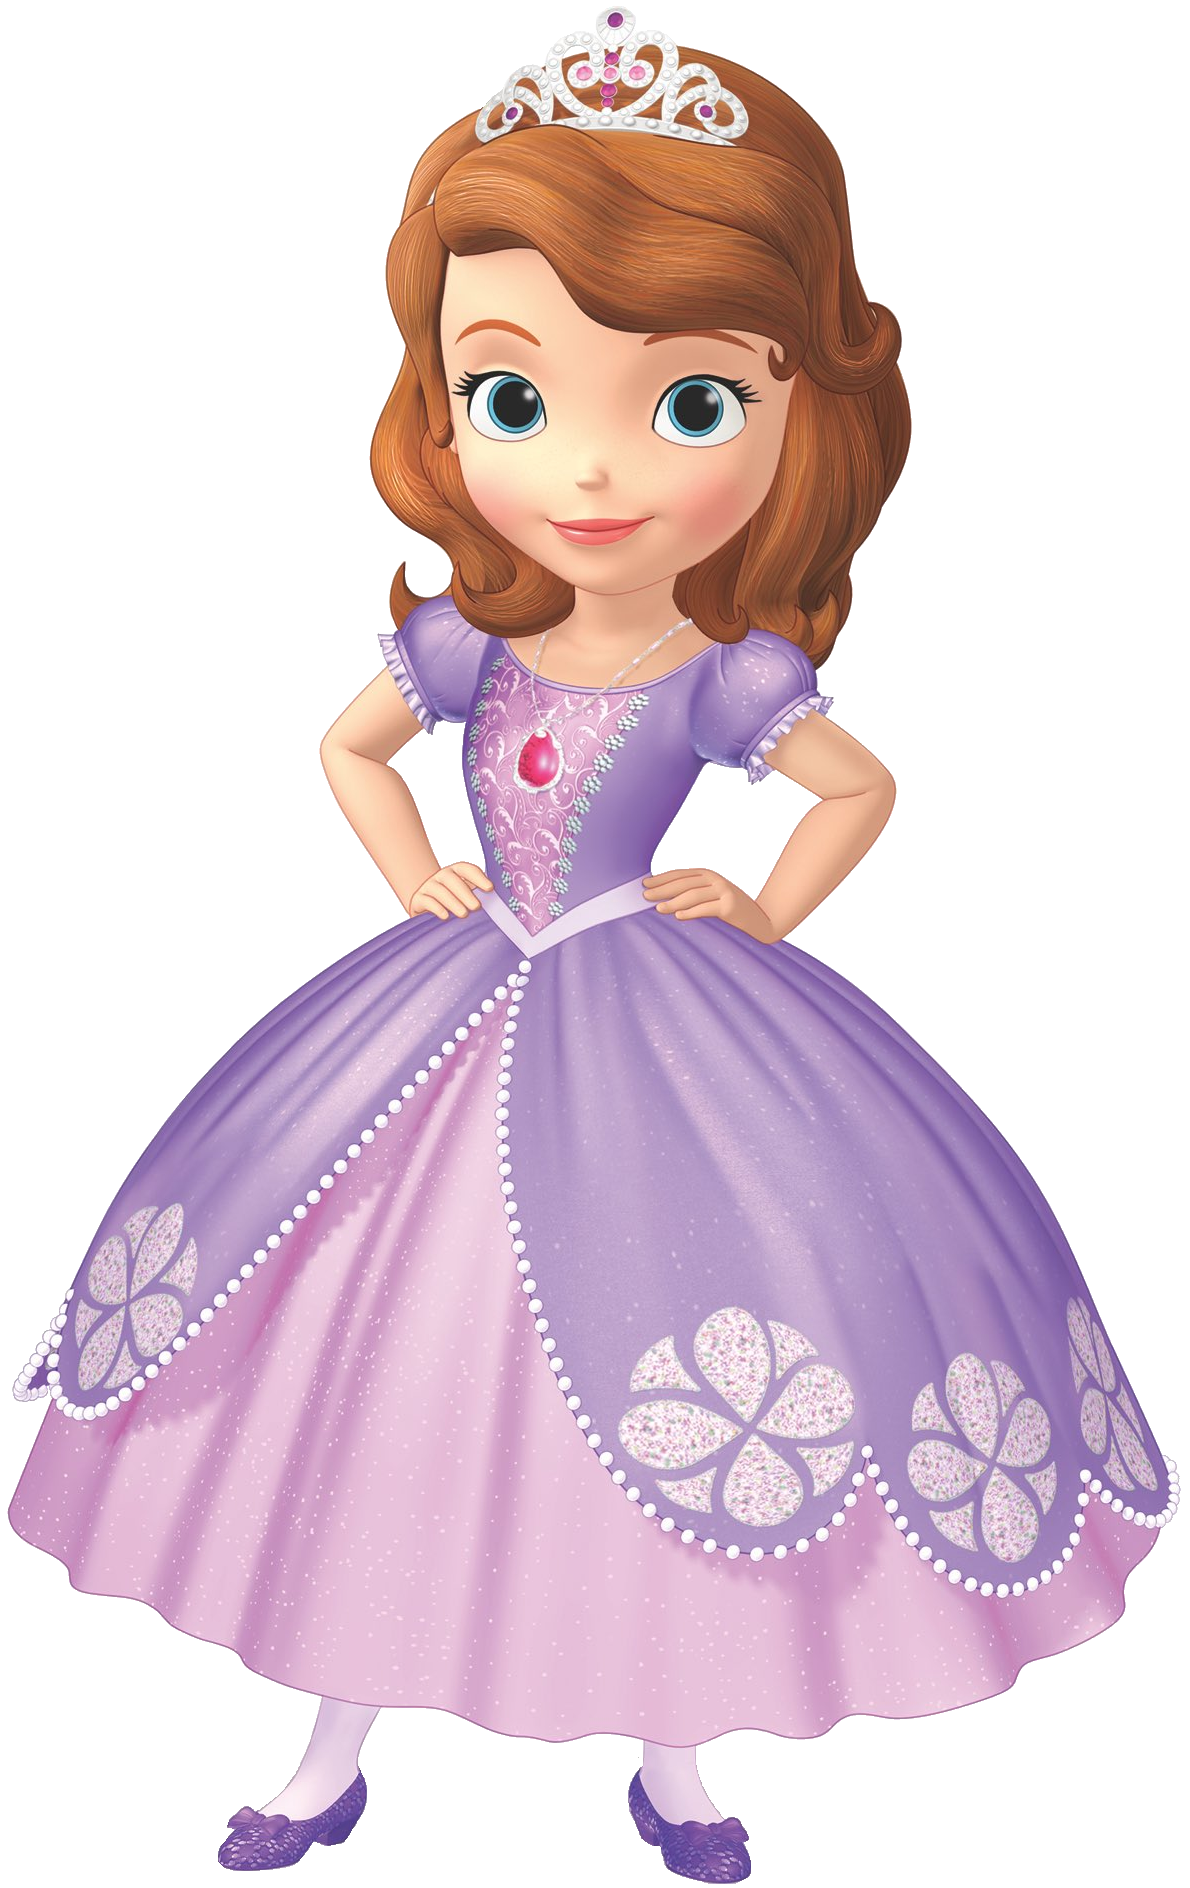 Princess Sofia | Sofia the First Wiki | FANDOM powered by Wikia